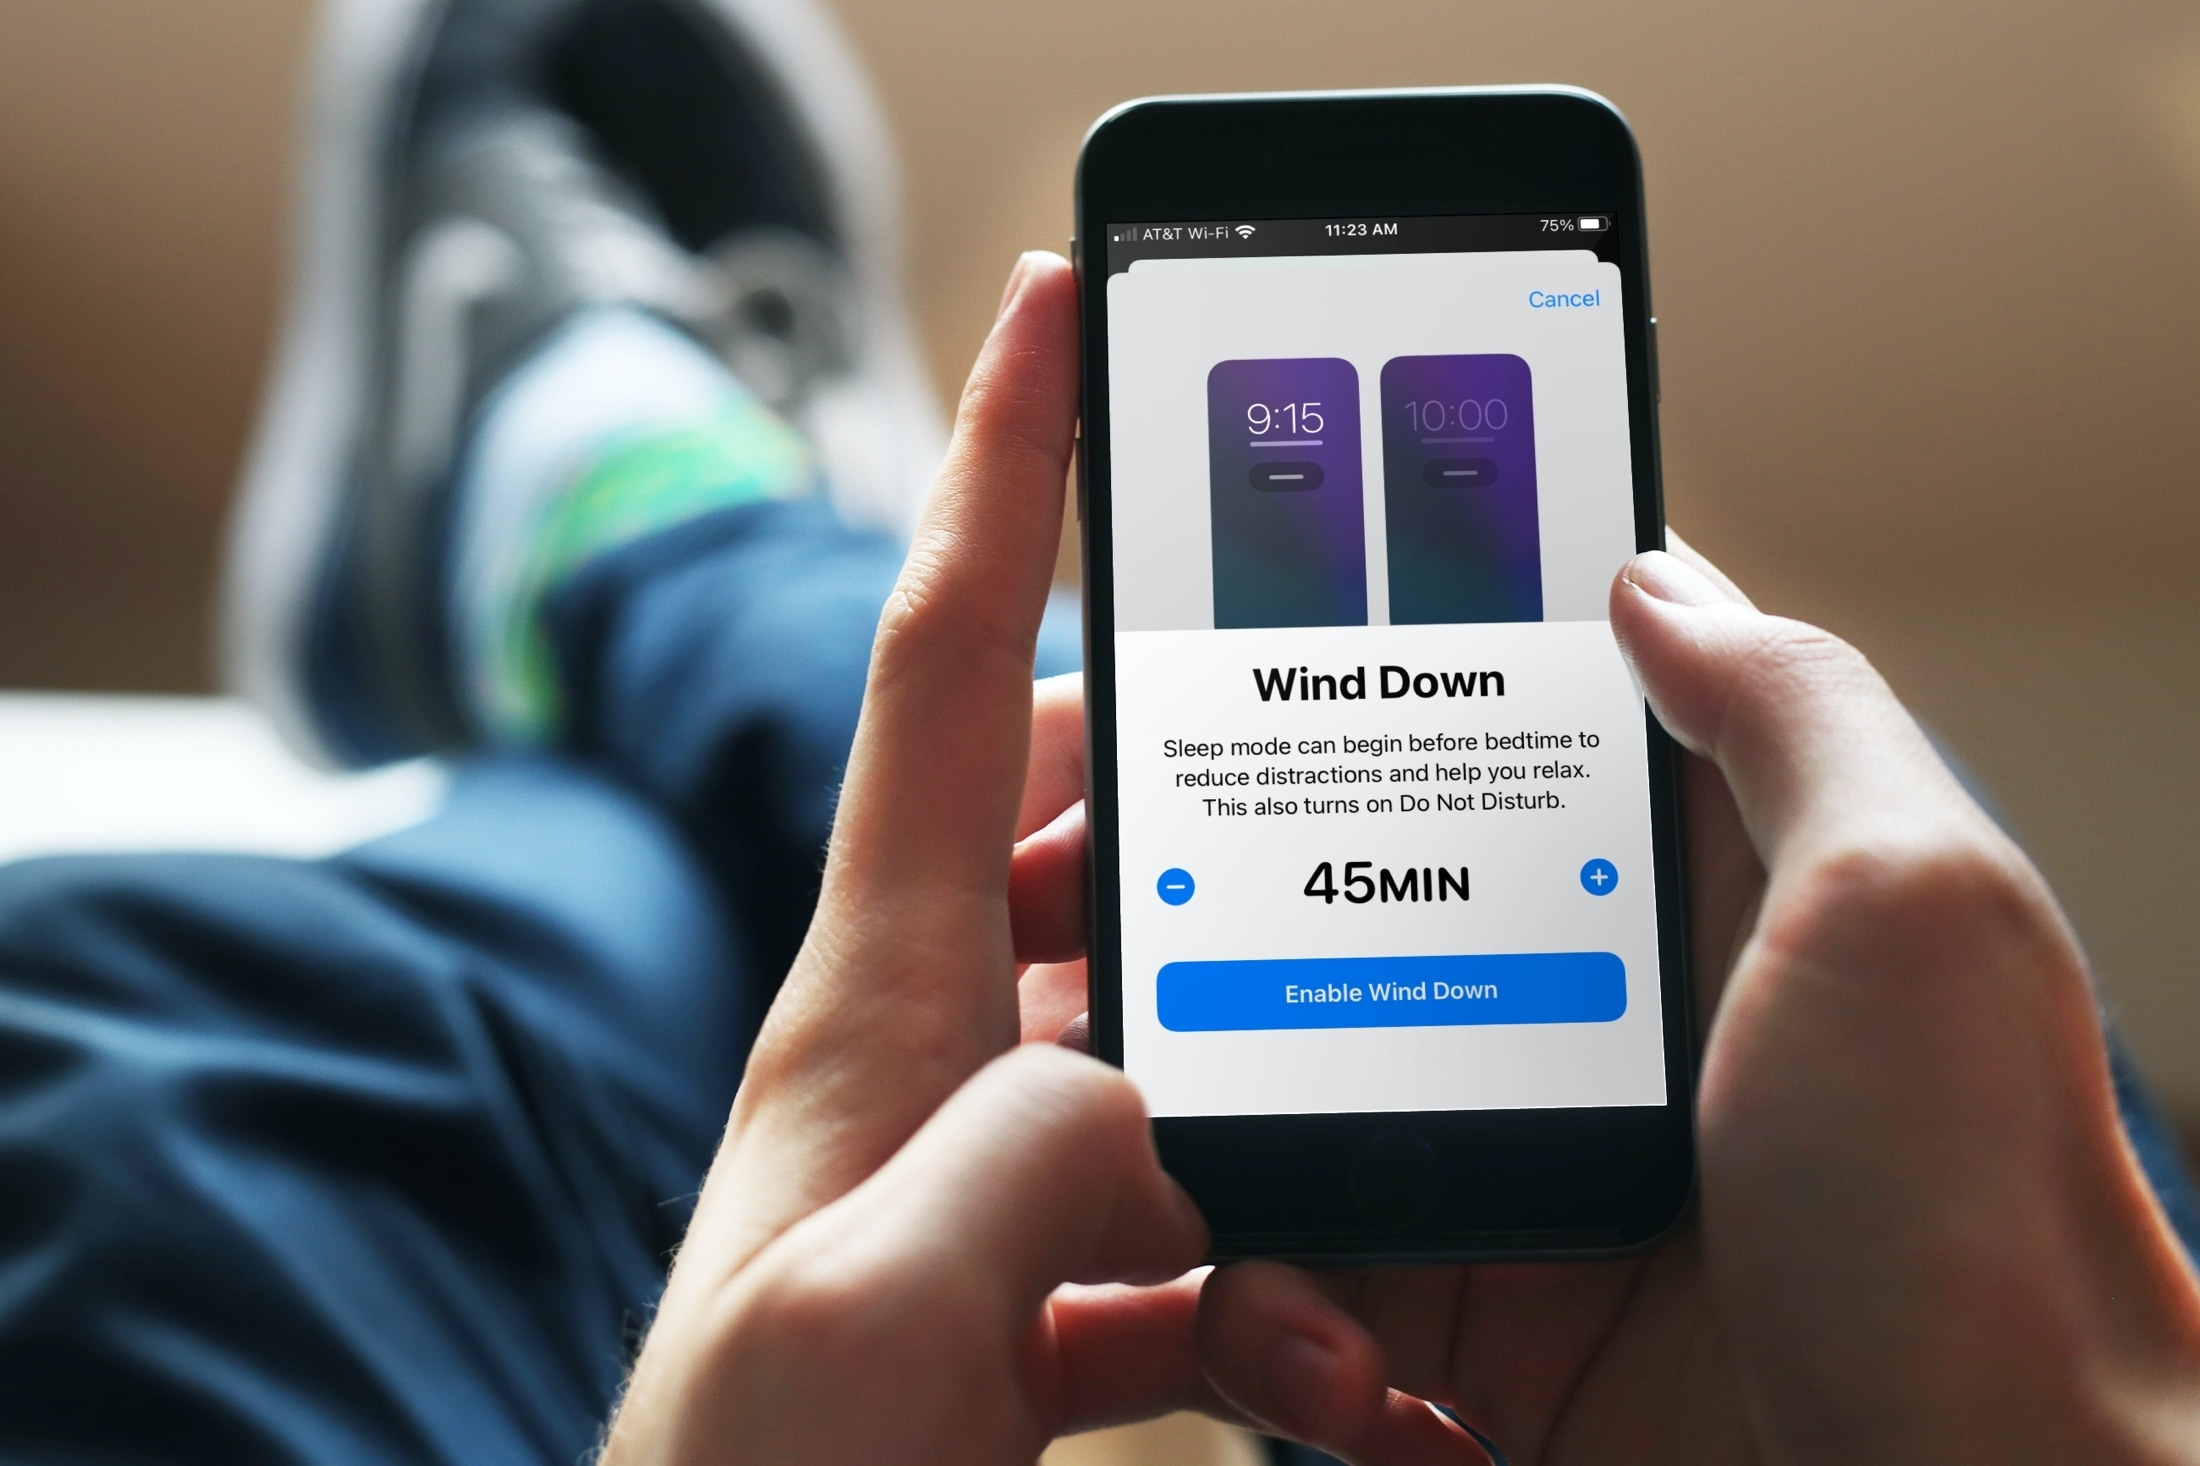 Timing for Wind Down on iPhone